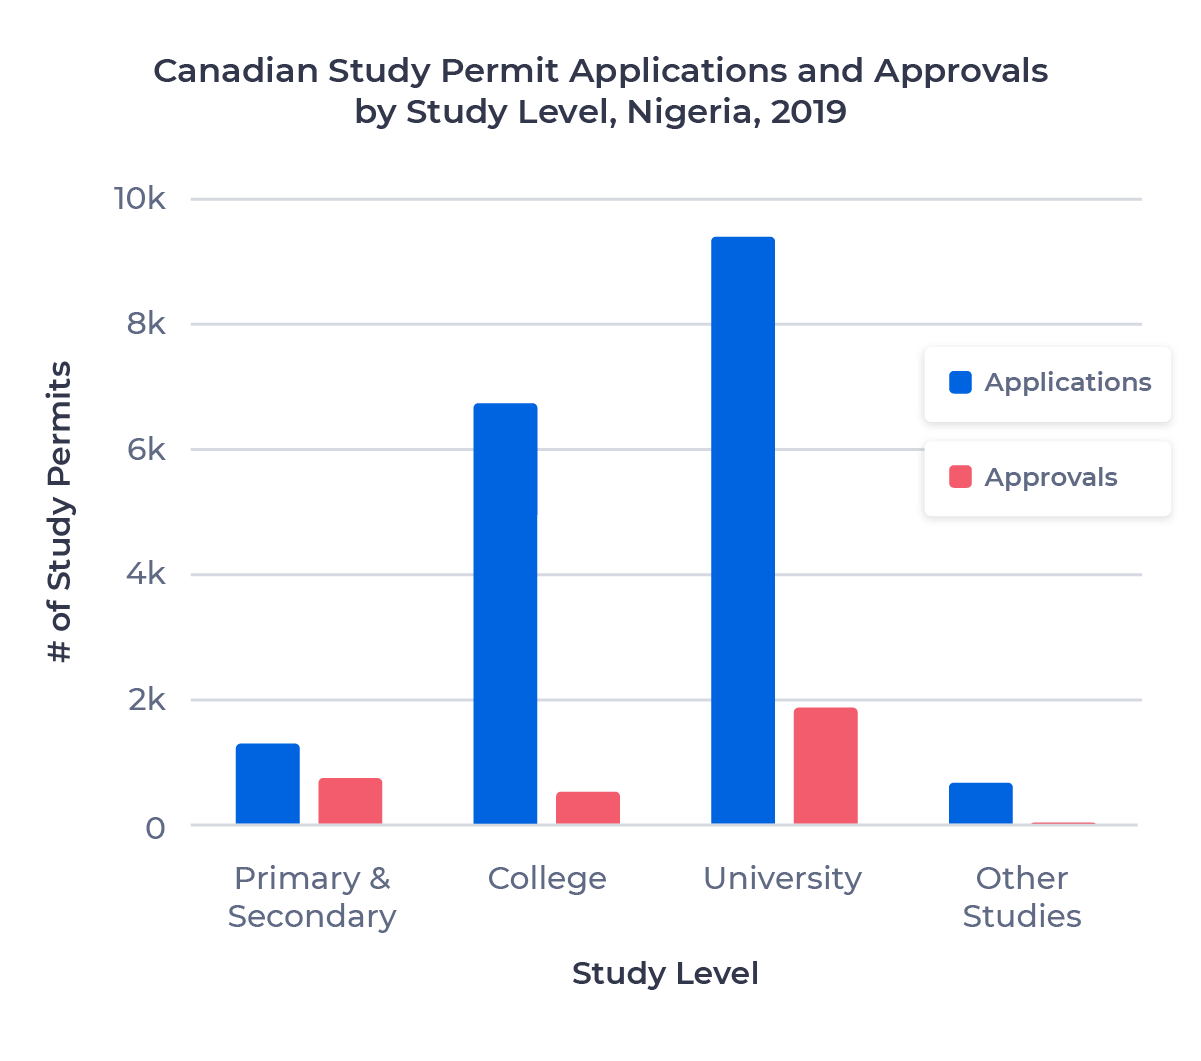 Vertical bar chart showing the number of study permit applications and approvals issued in 2019 to Nigerian students based on grouped study level